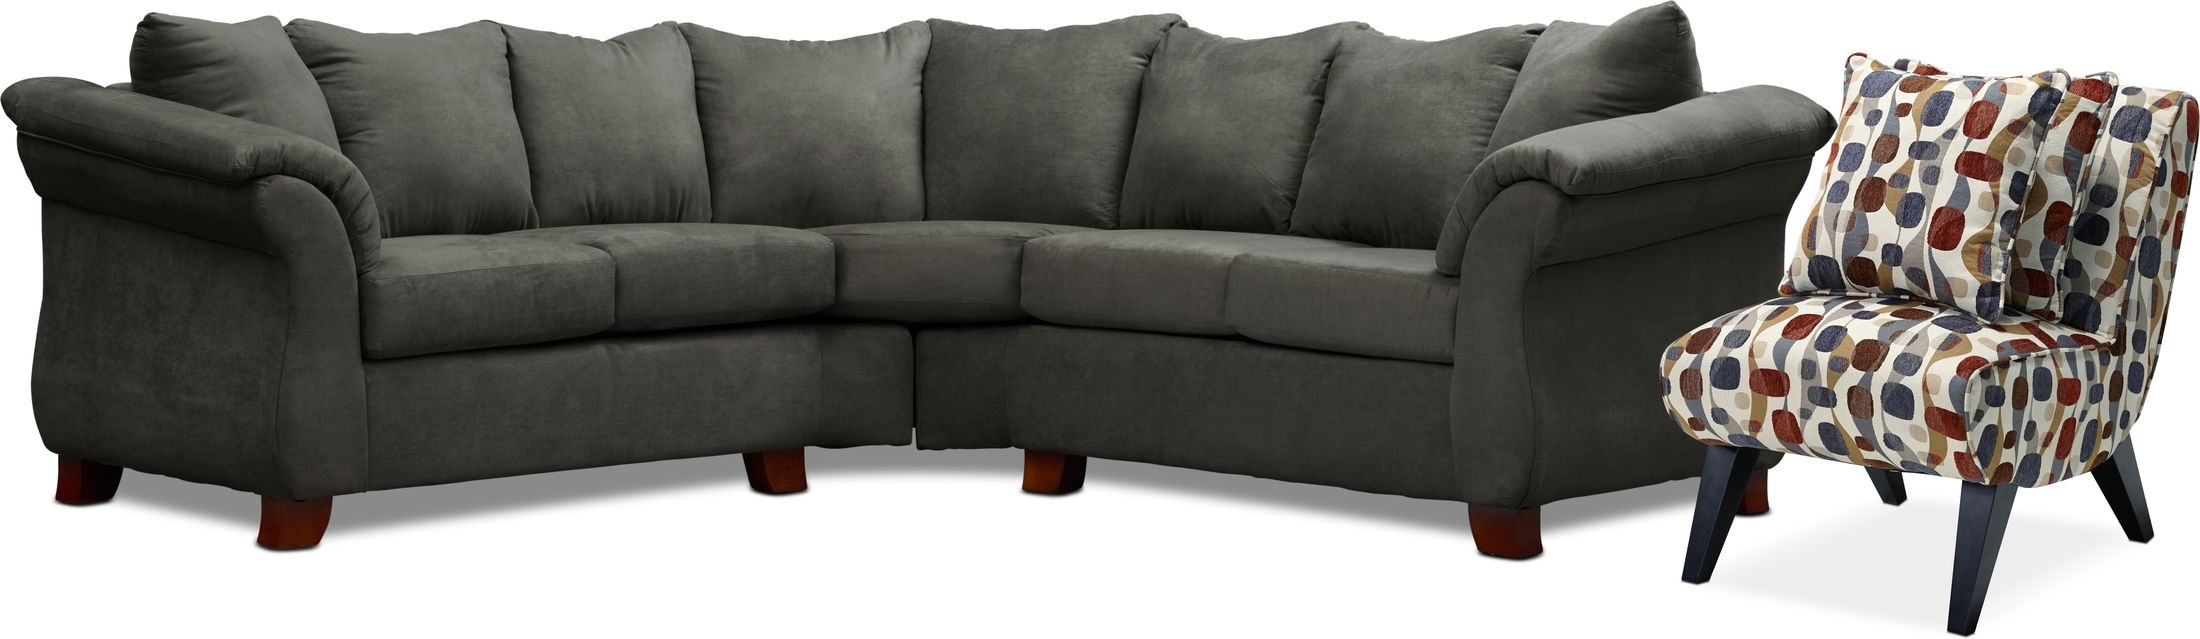 Living Room Furniture - Adrian 2-Piece Sectional and Accent Chair Set